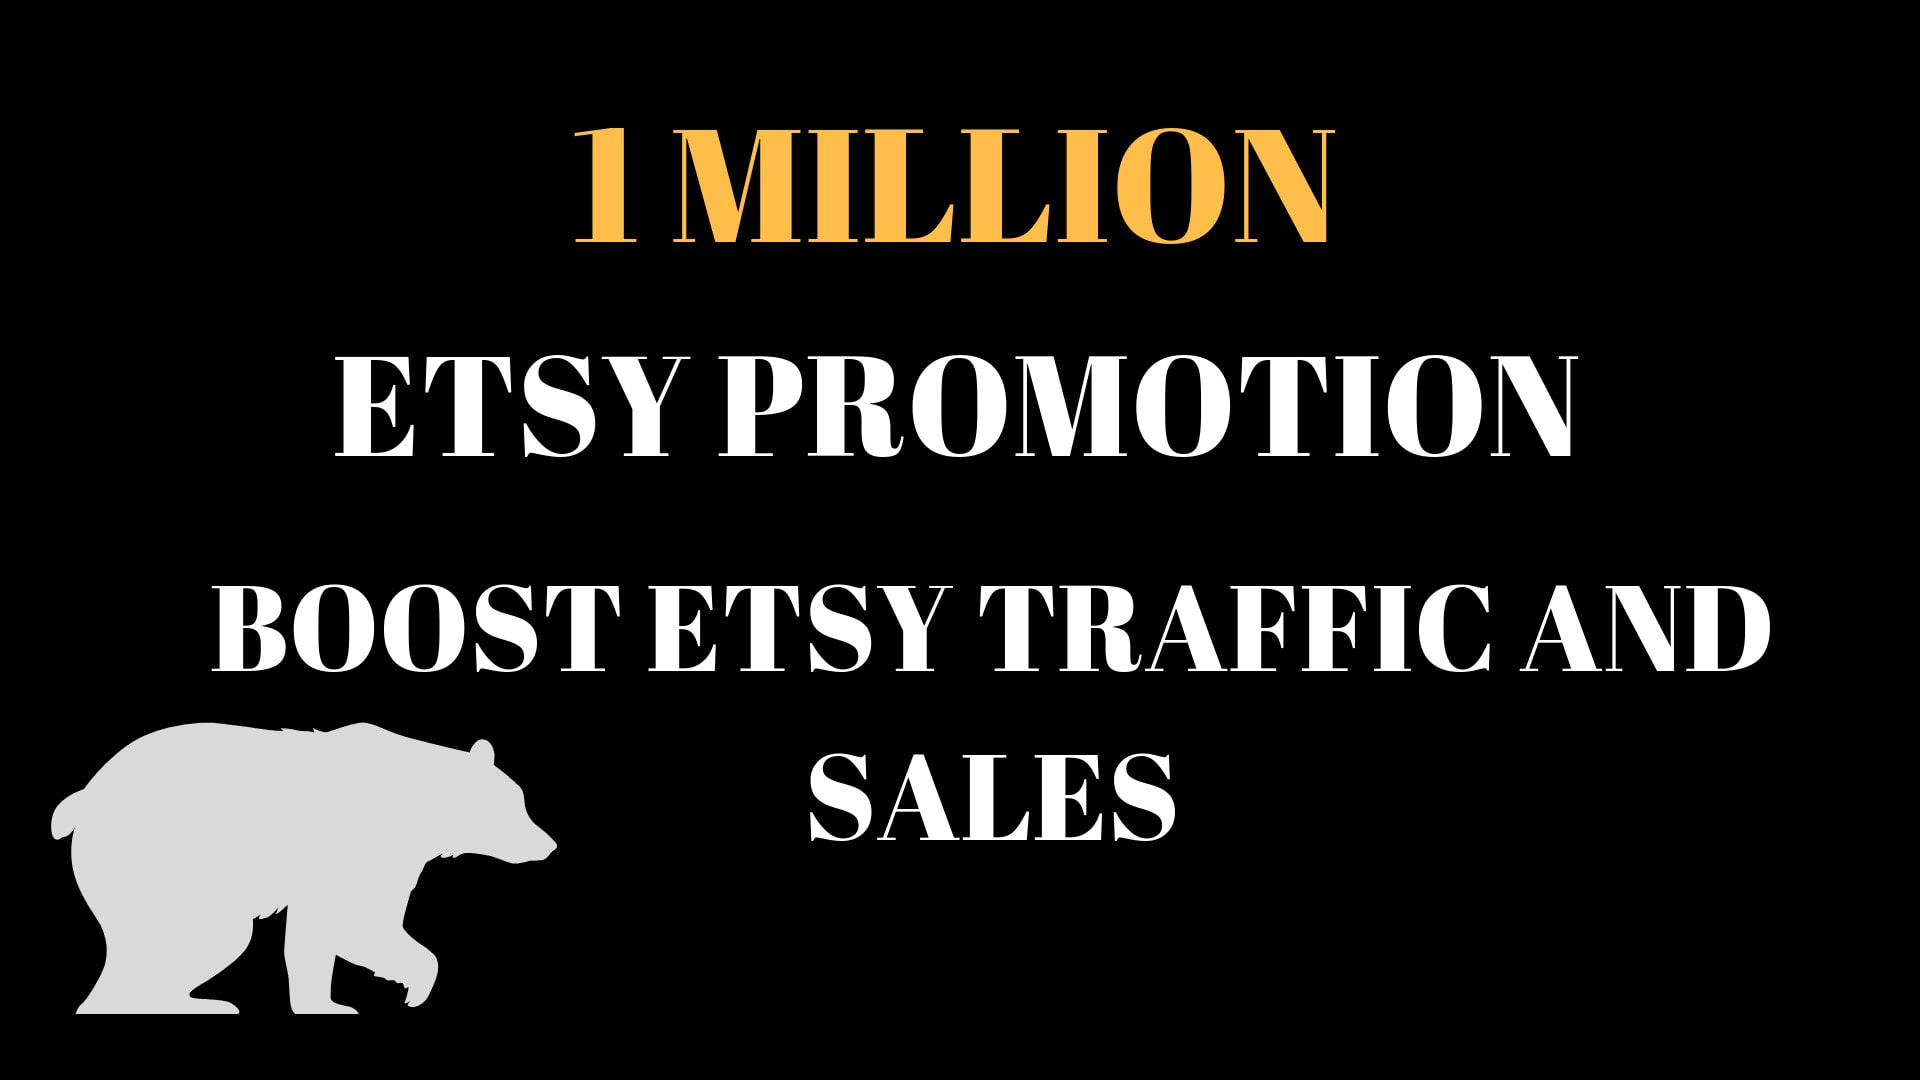 do 1 million seo backlinks for etsy promotion,  boost etsy traffic and sales